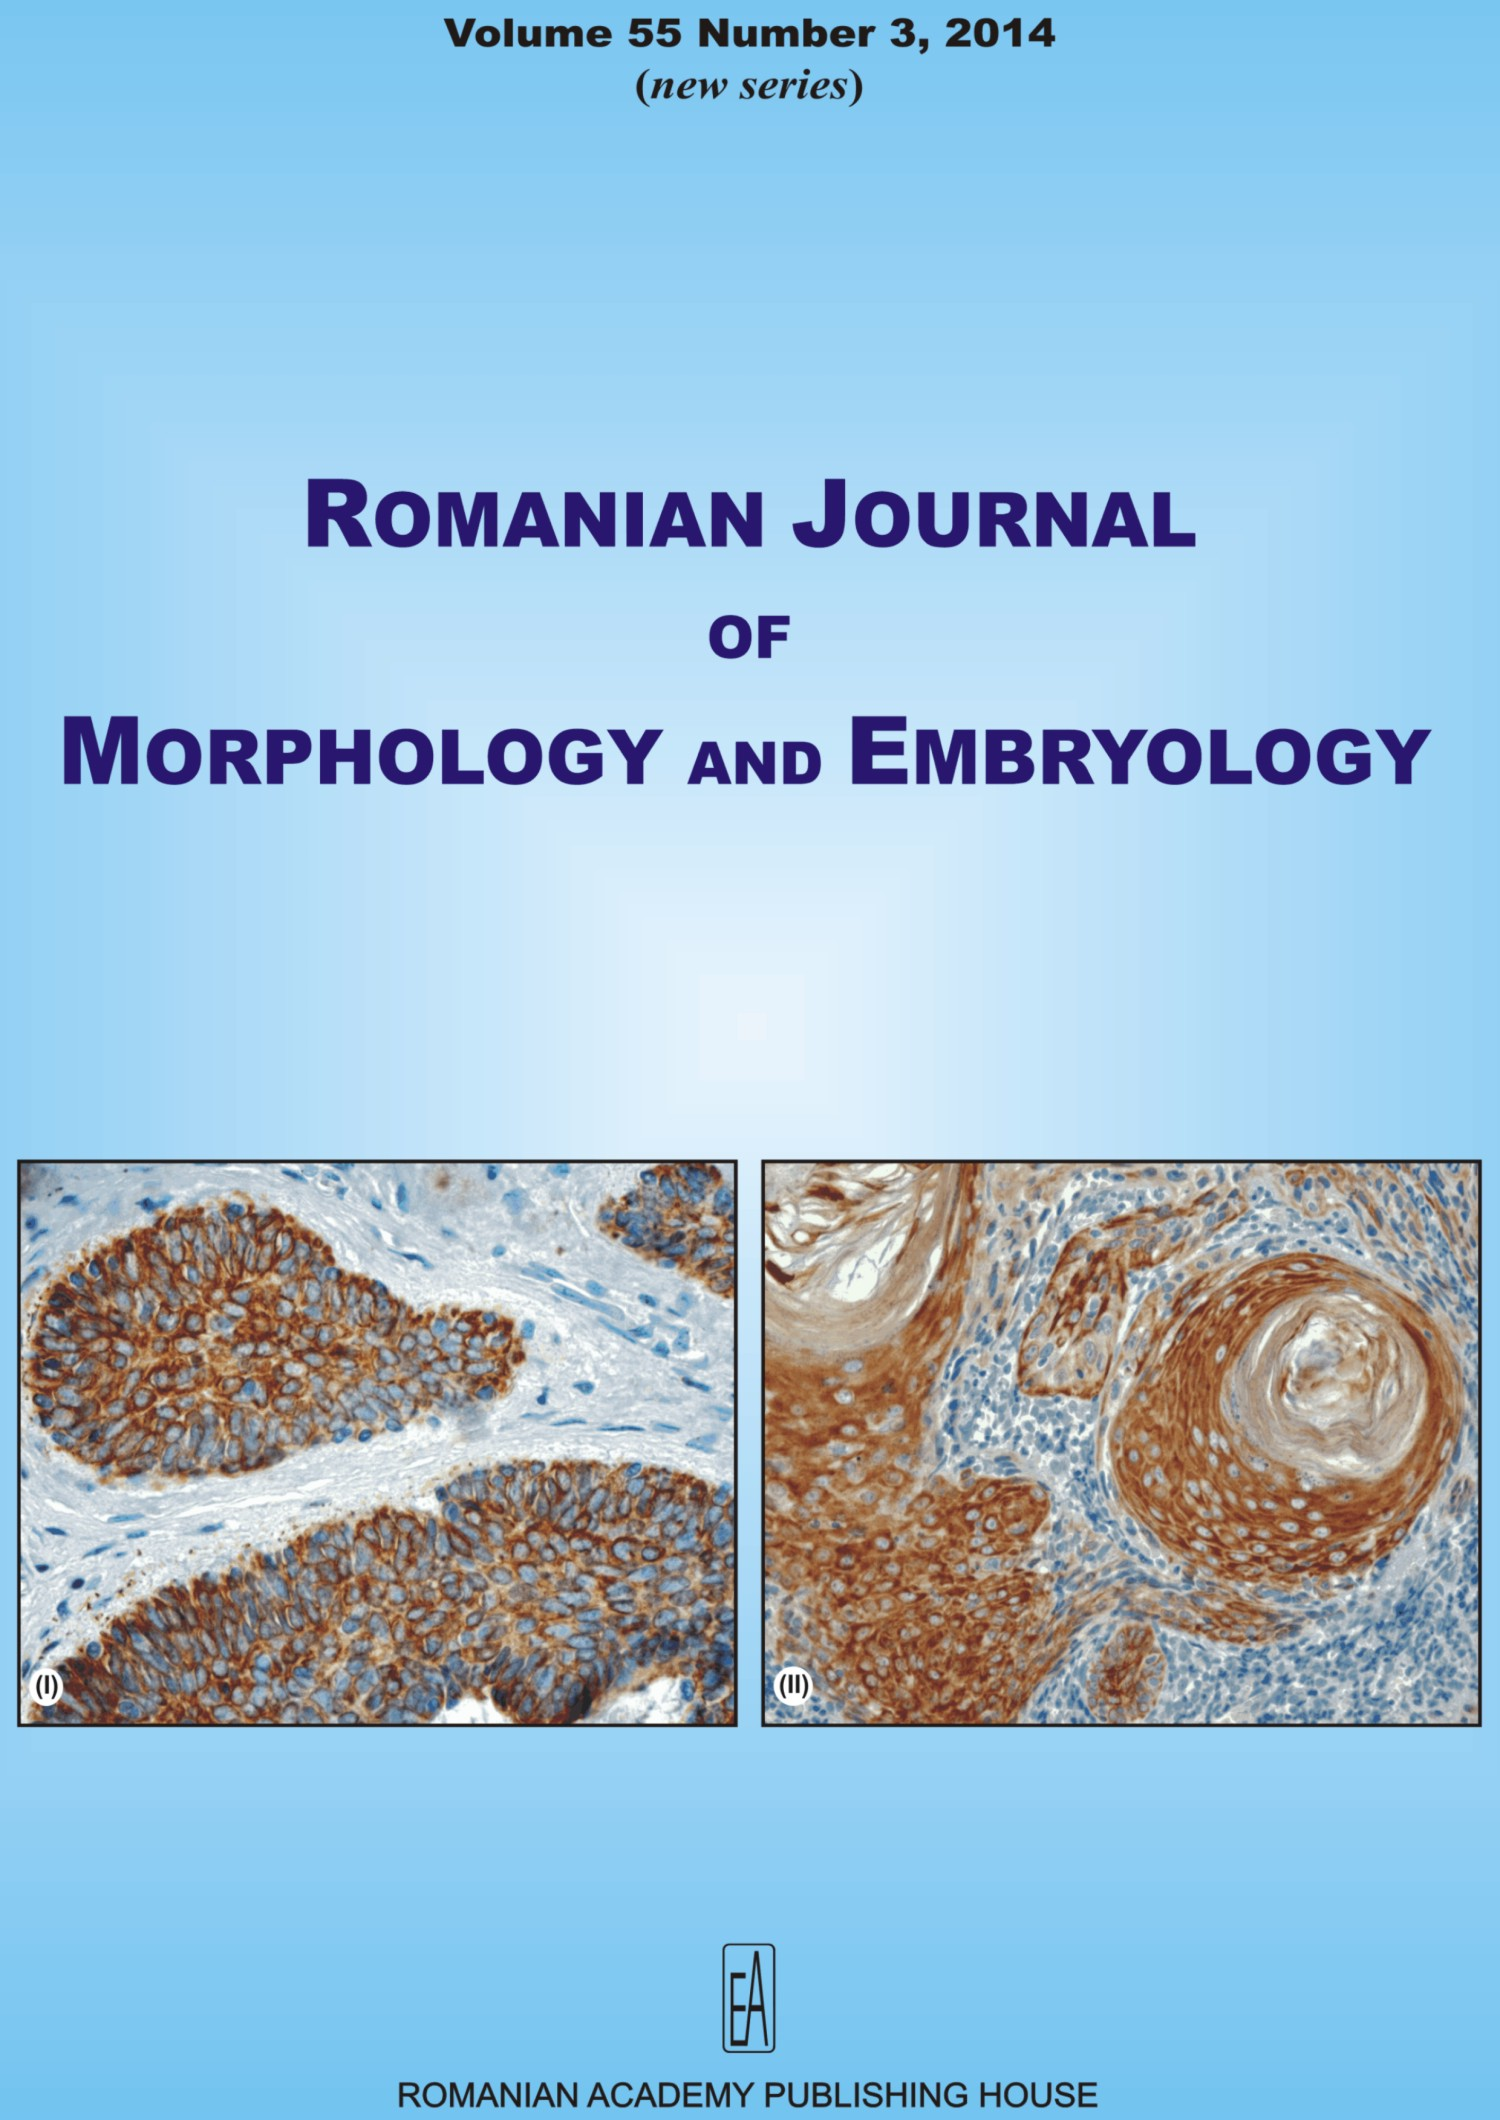 Romanian Journal of Morphology and Embryology, vol. 55 no. 3, 2014